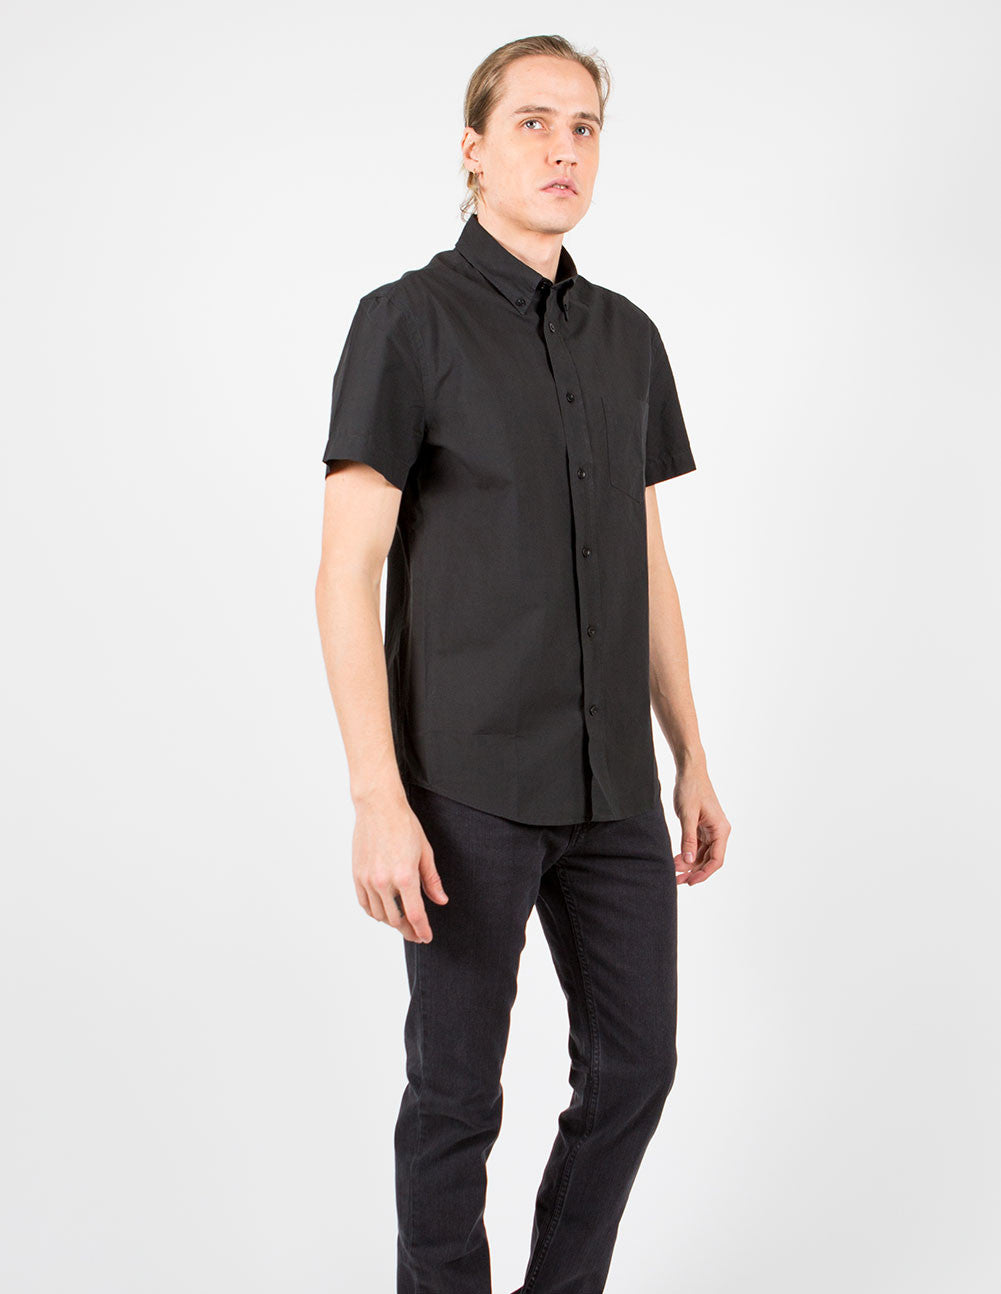 Isherwood Sh Ltco Shirt